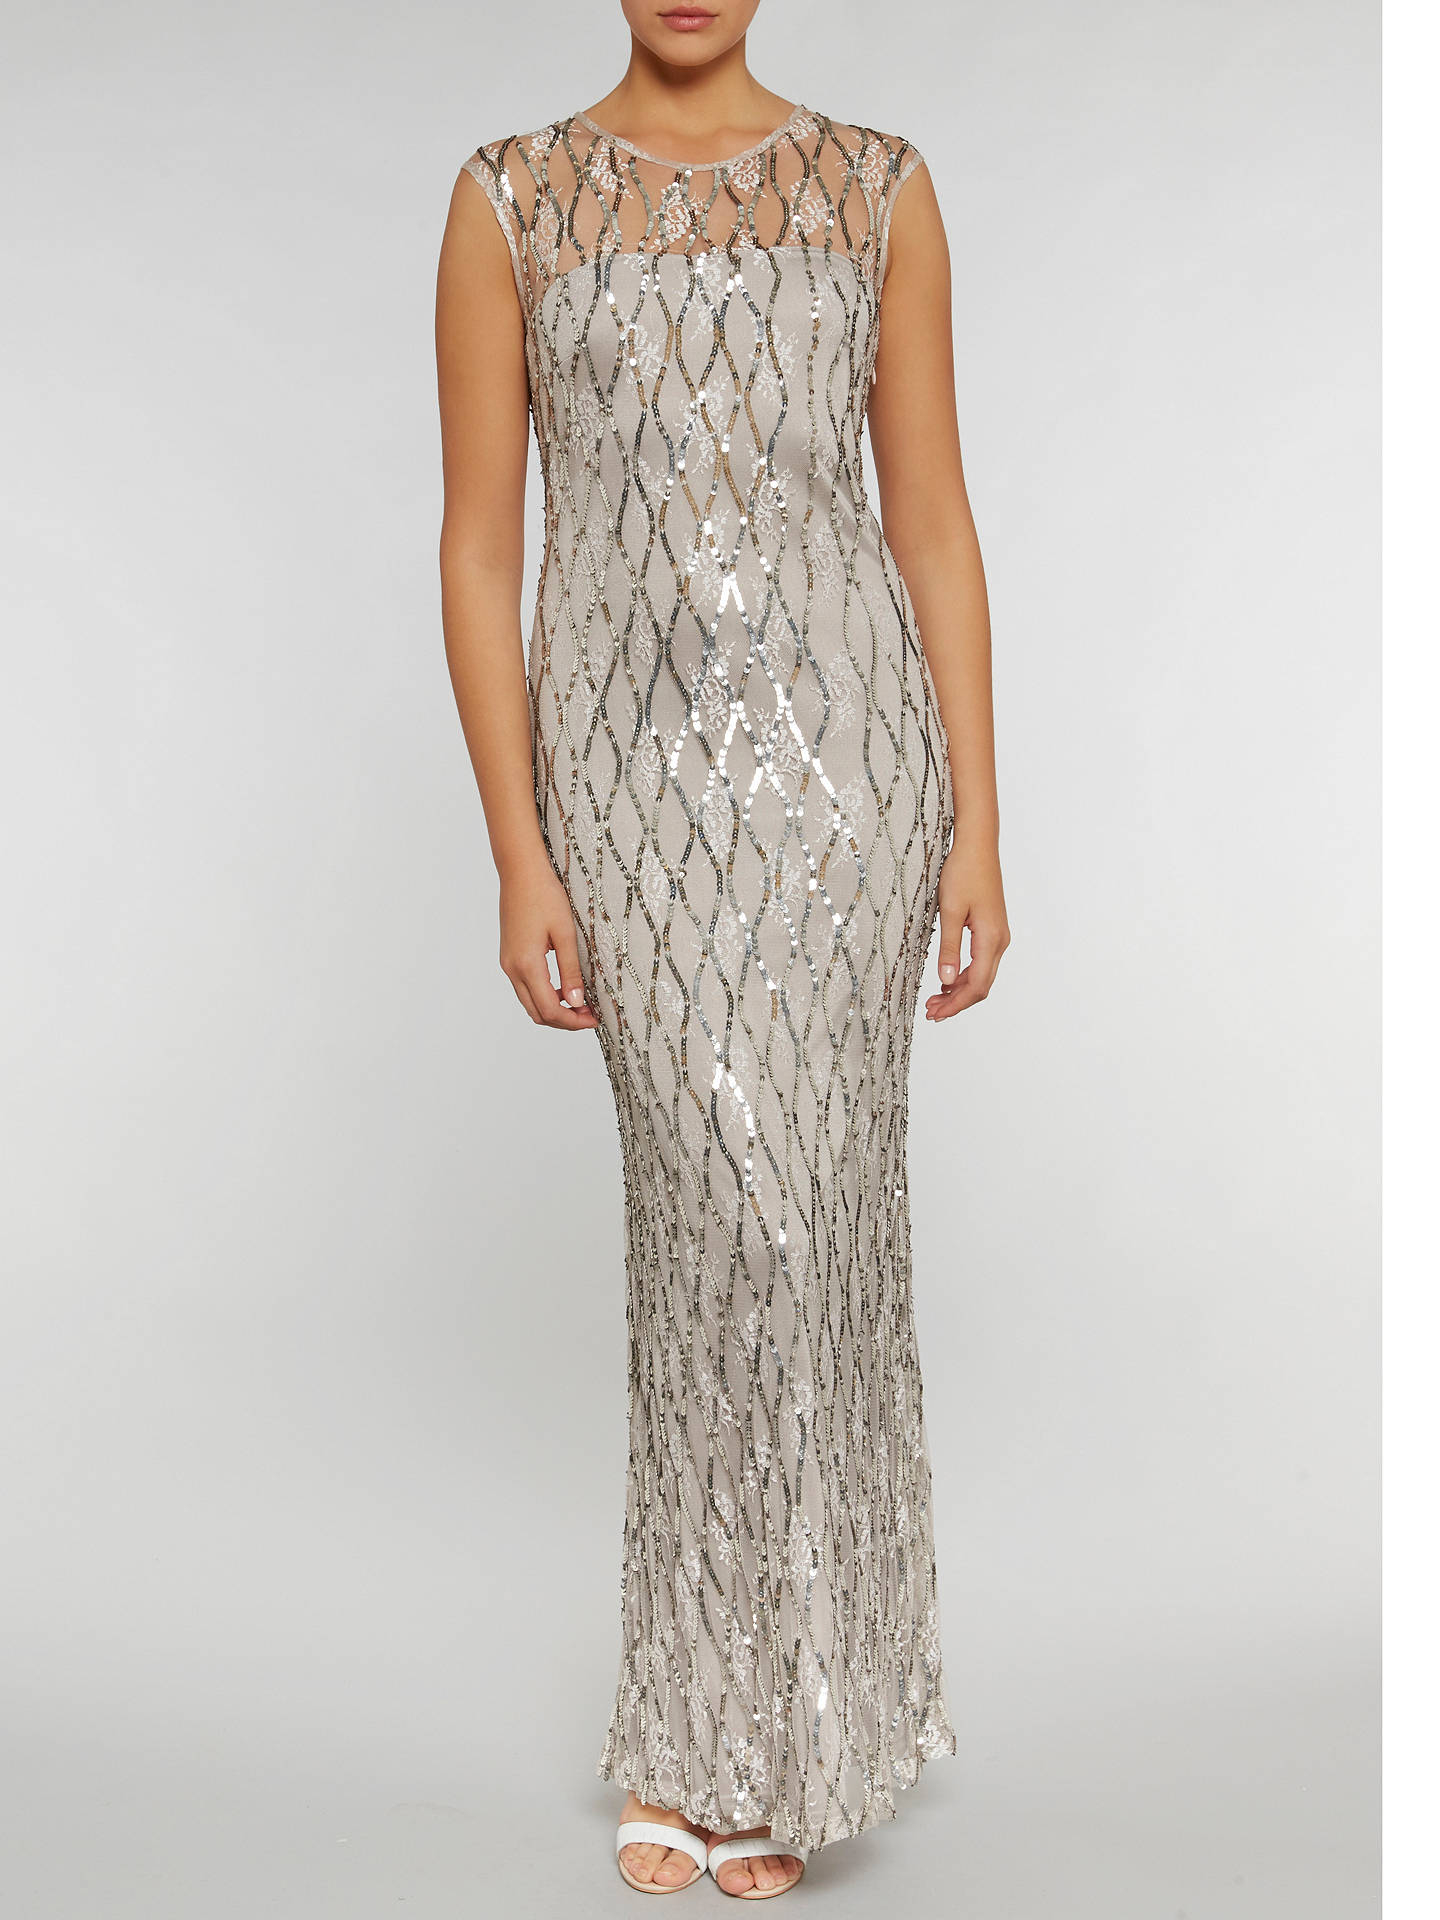 Buy Gina Bacconi Sequin Lace Maxi Dress, Silver, 8 Online at johnlewis.com